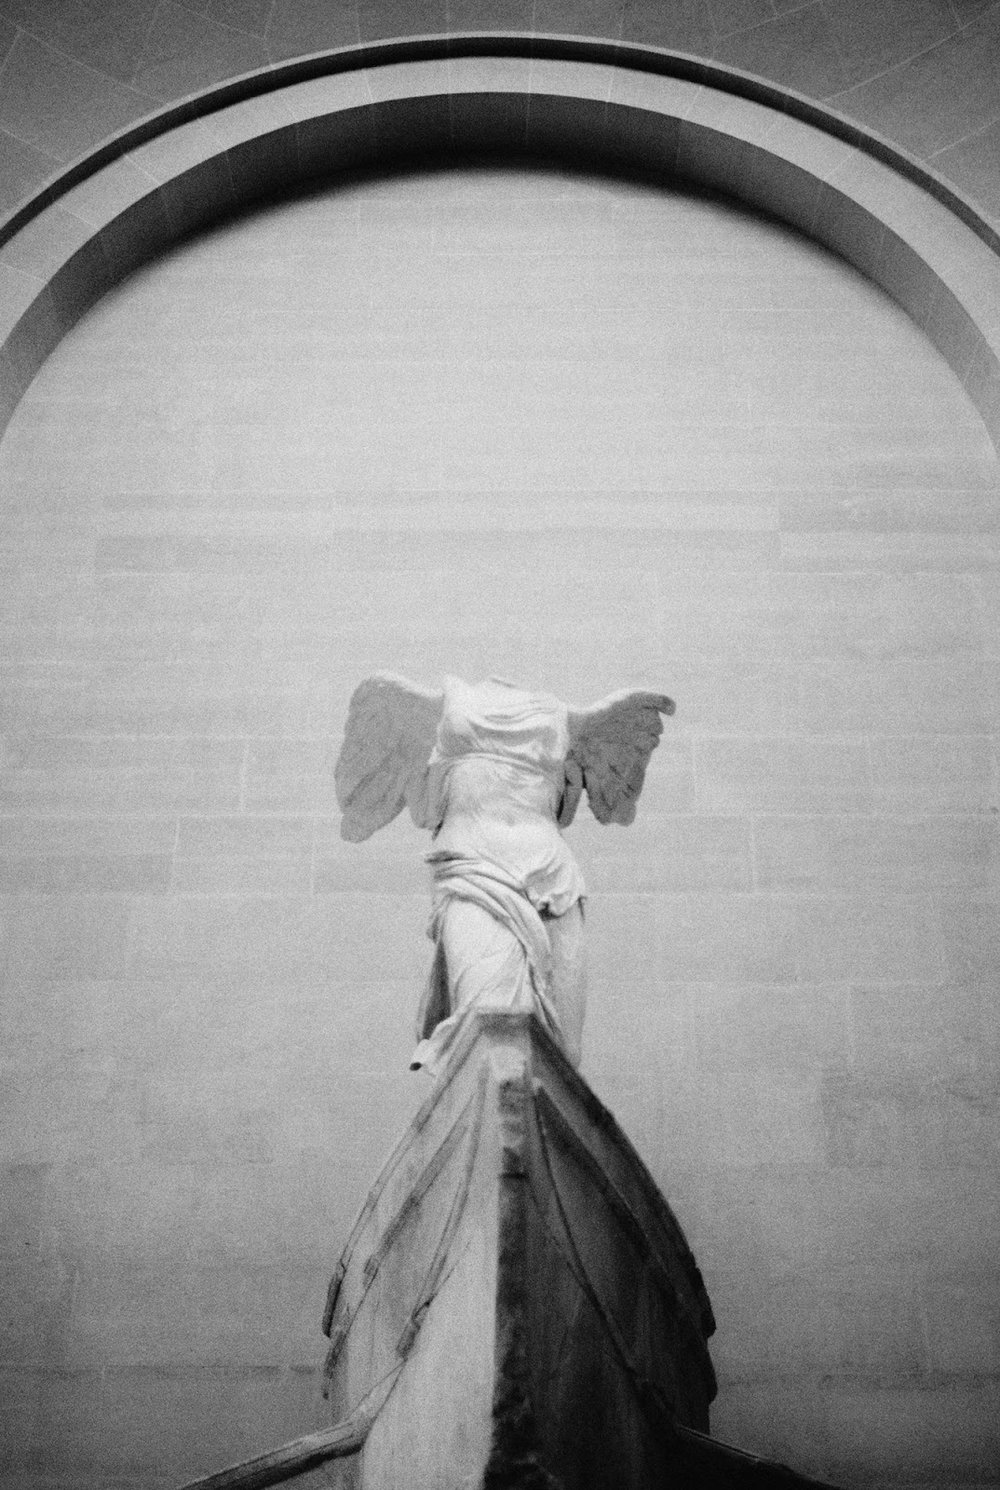 louvre winged victory